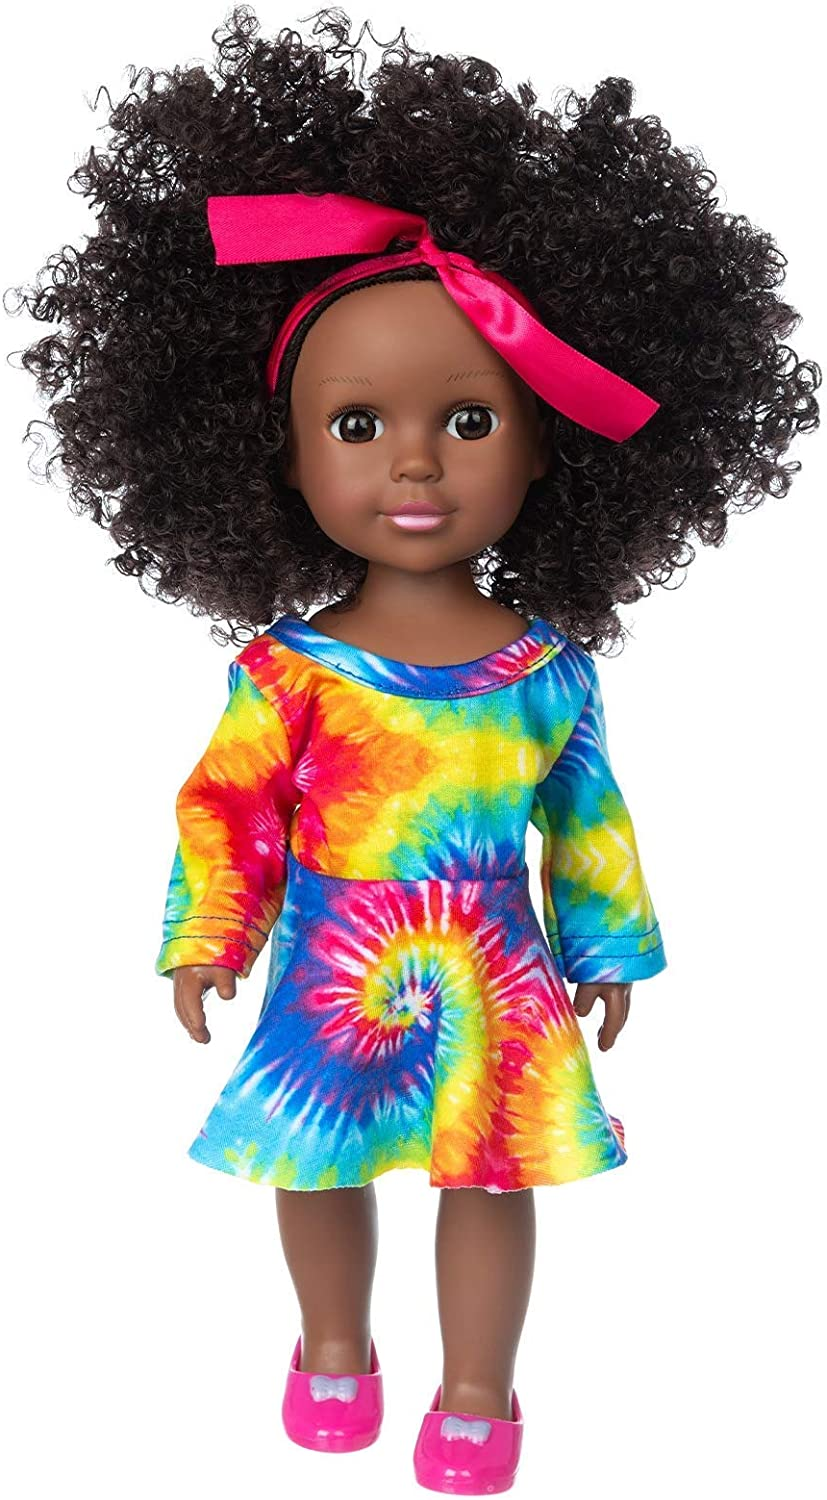 BDDOLL Black 2021 new Doll and Baby Clothes Sets A African Max 89% OFF Inch 14.5